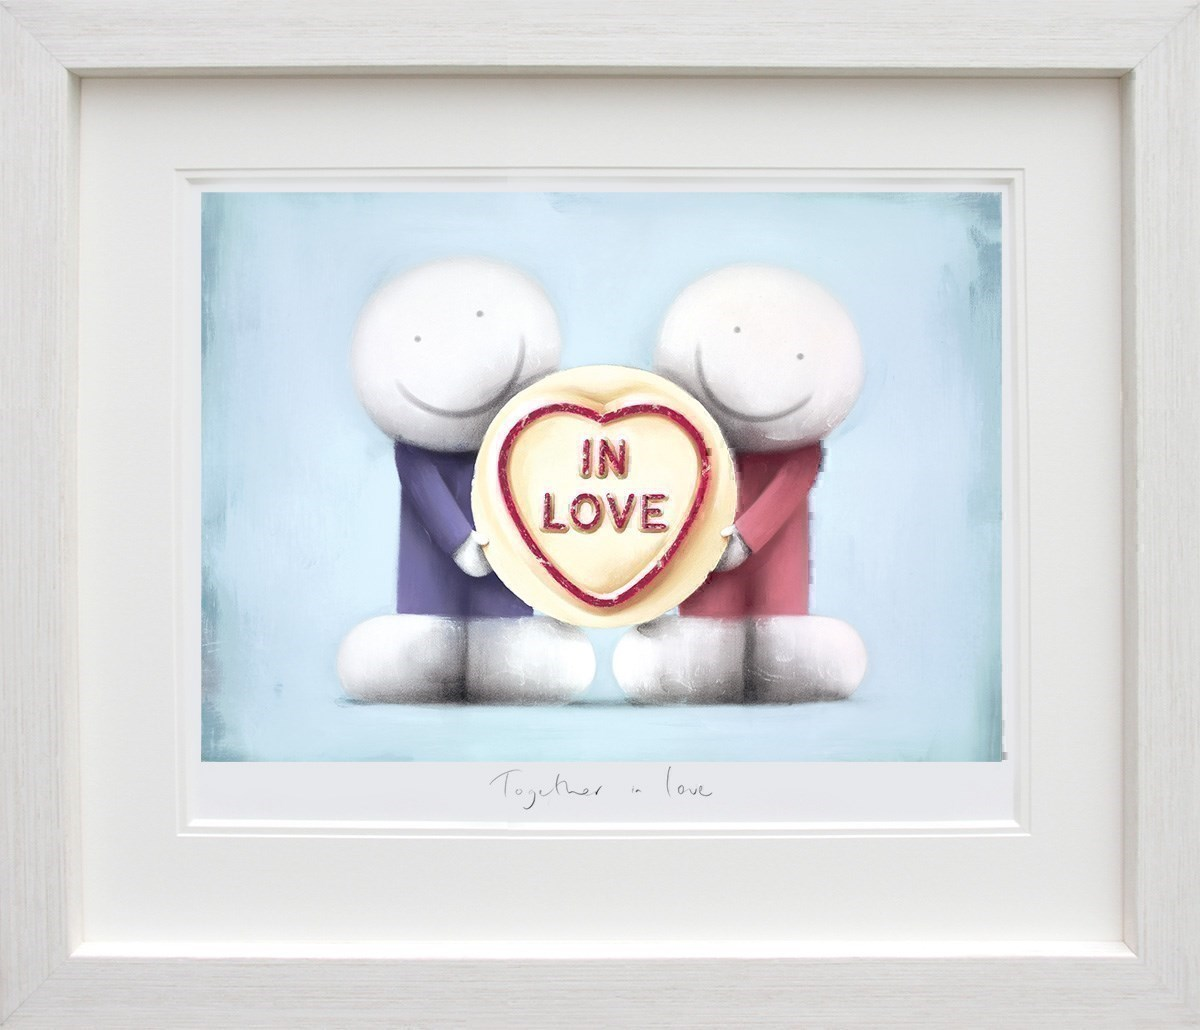 Together in Love by Doug Hyde - Limited Edition on Paper sized 26x18 inches. Available from Whitewall Galleries